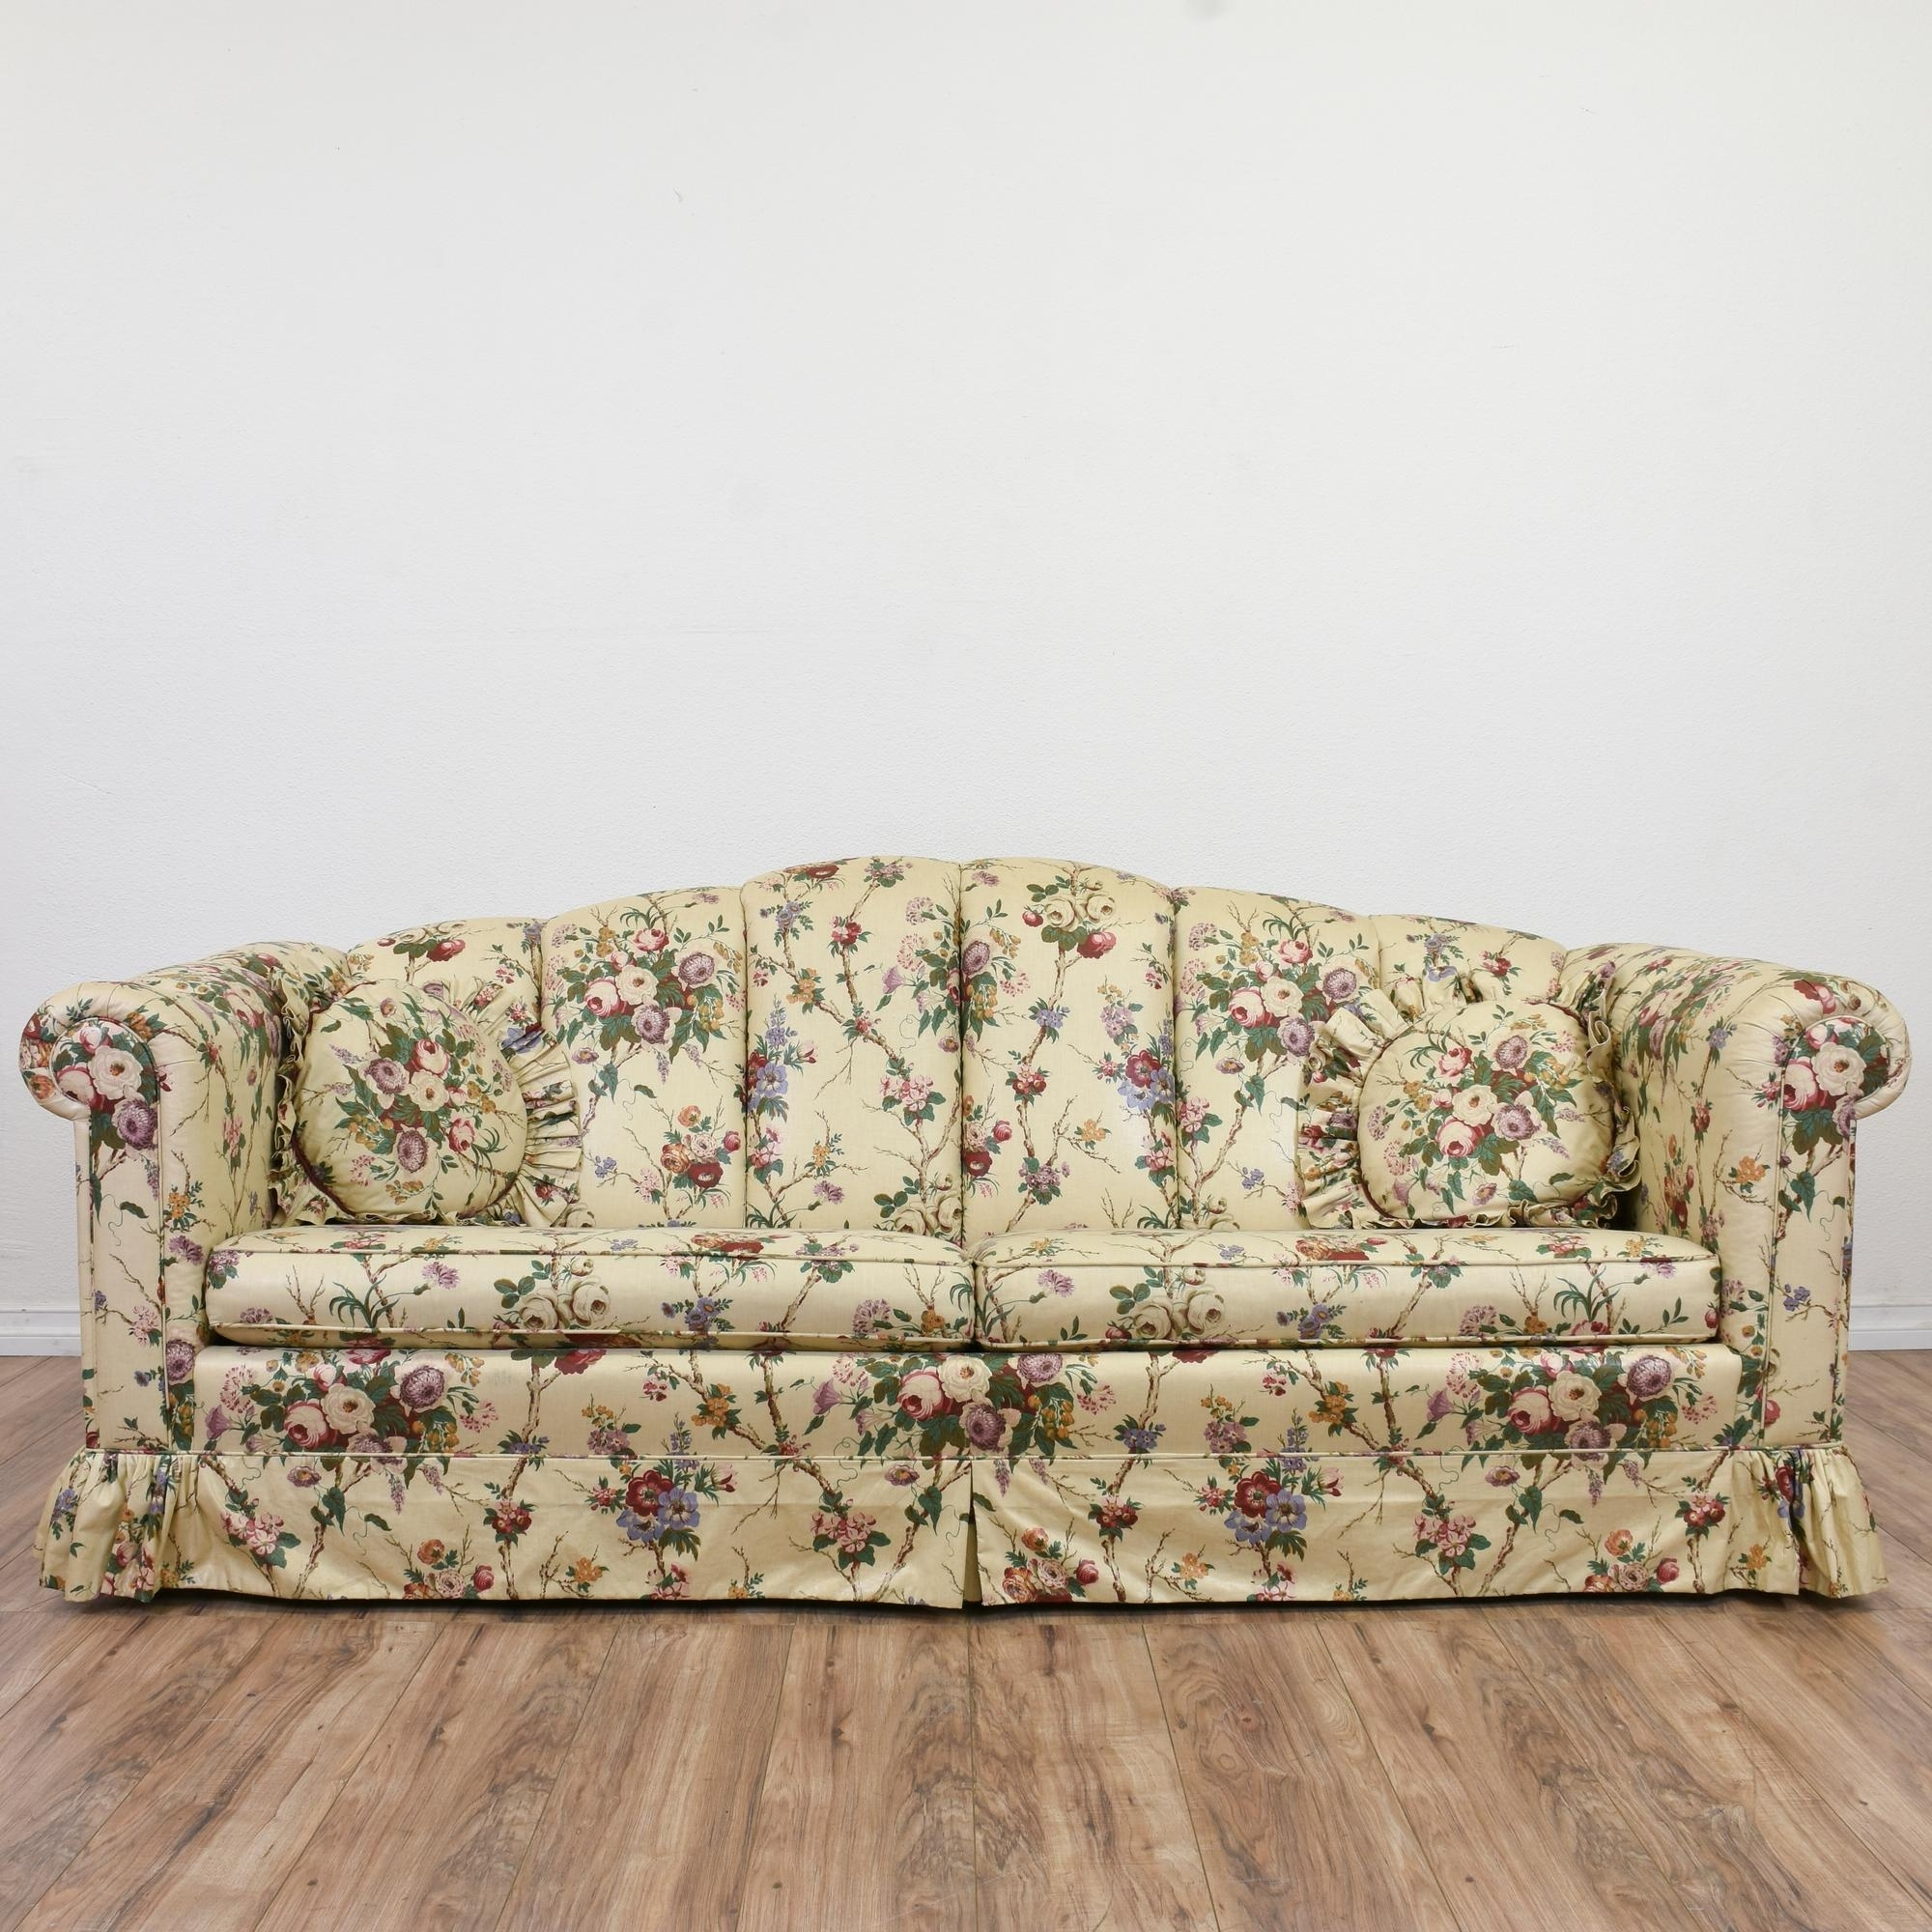 Newest This Sofa Is Upholstered In A Durable Off White Beige, Pink And Within Chintz Fabric Sofas (View 11 of 15)